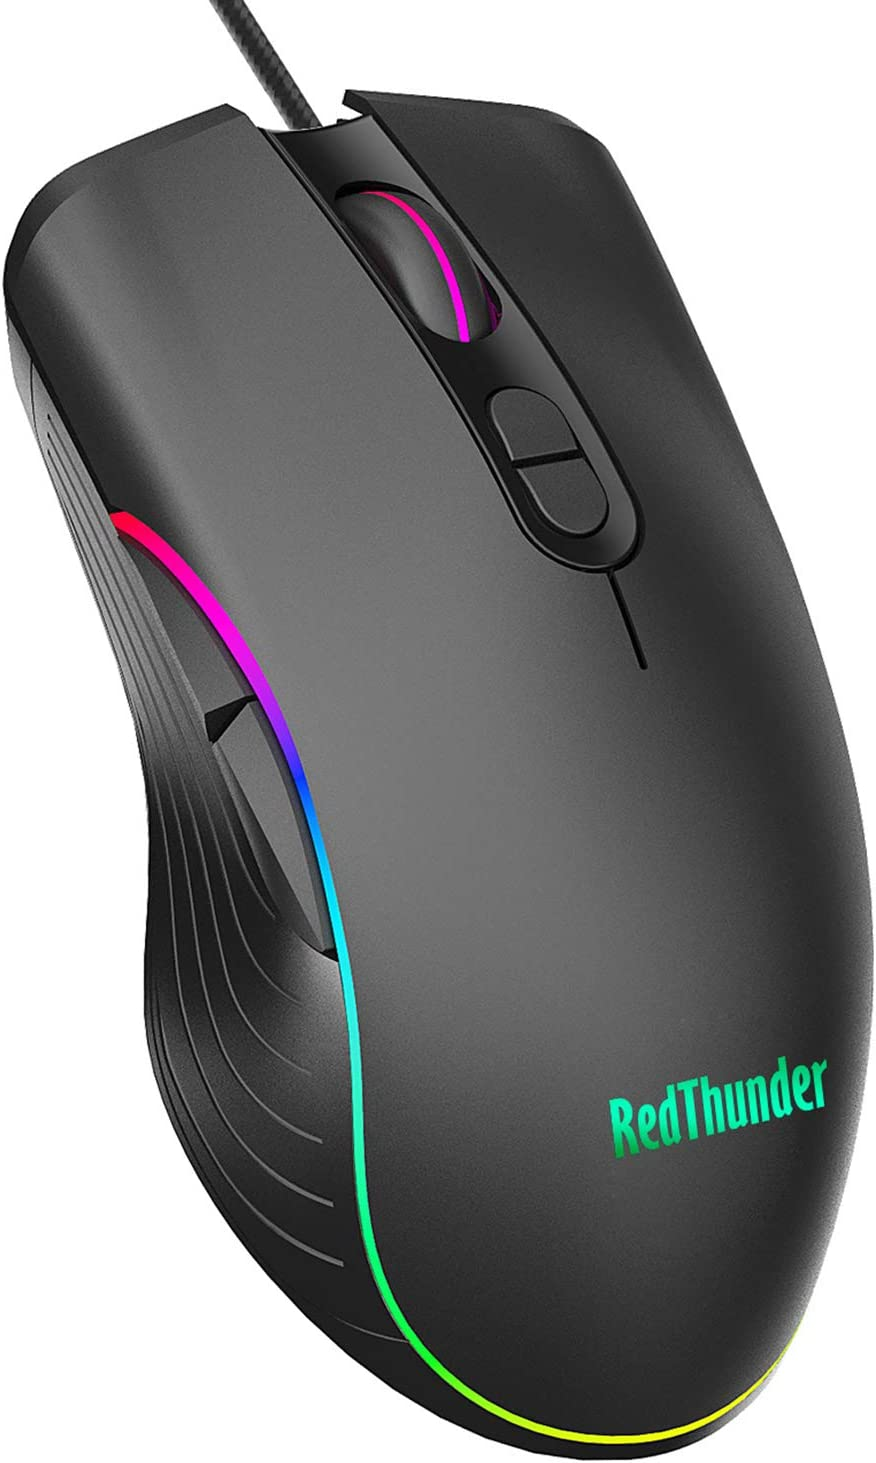 RedThunder Gaming Mouse Wired, 7 Programmable Buttons, Chroma RGB Backlit, 6400 DPI Adjustable, Comfortable Grip Ergonomic Optical PC Computer Gaming Mice with Fire Button